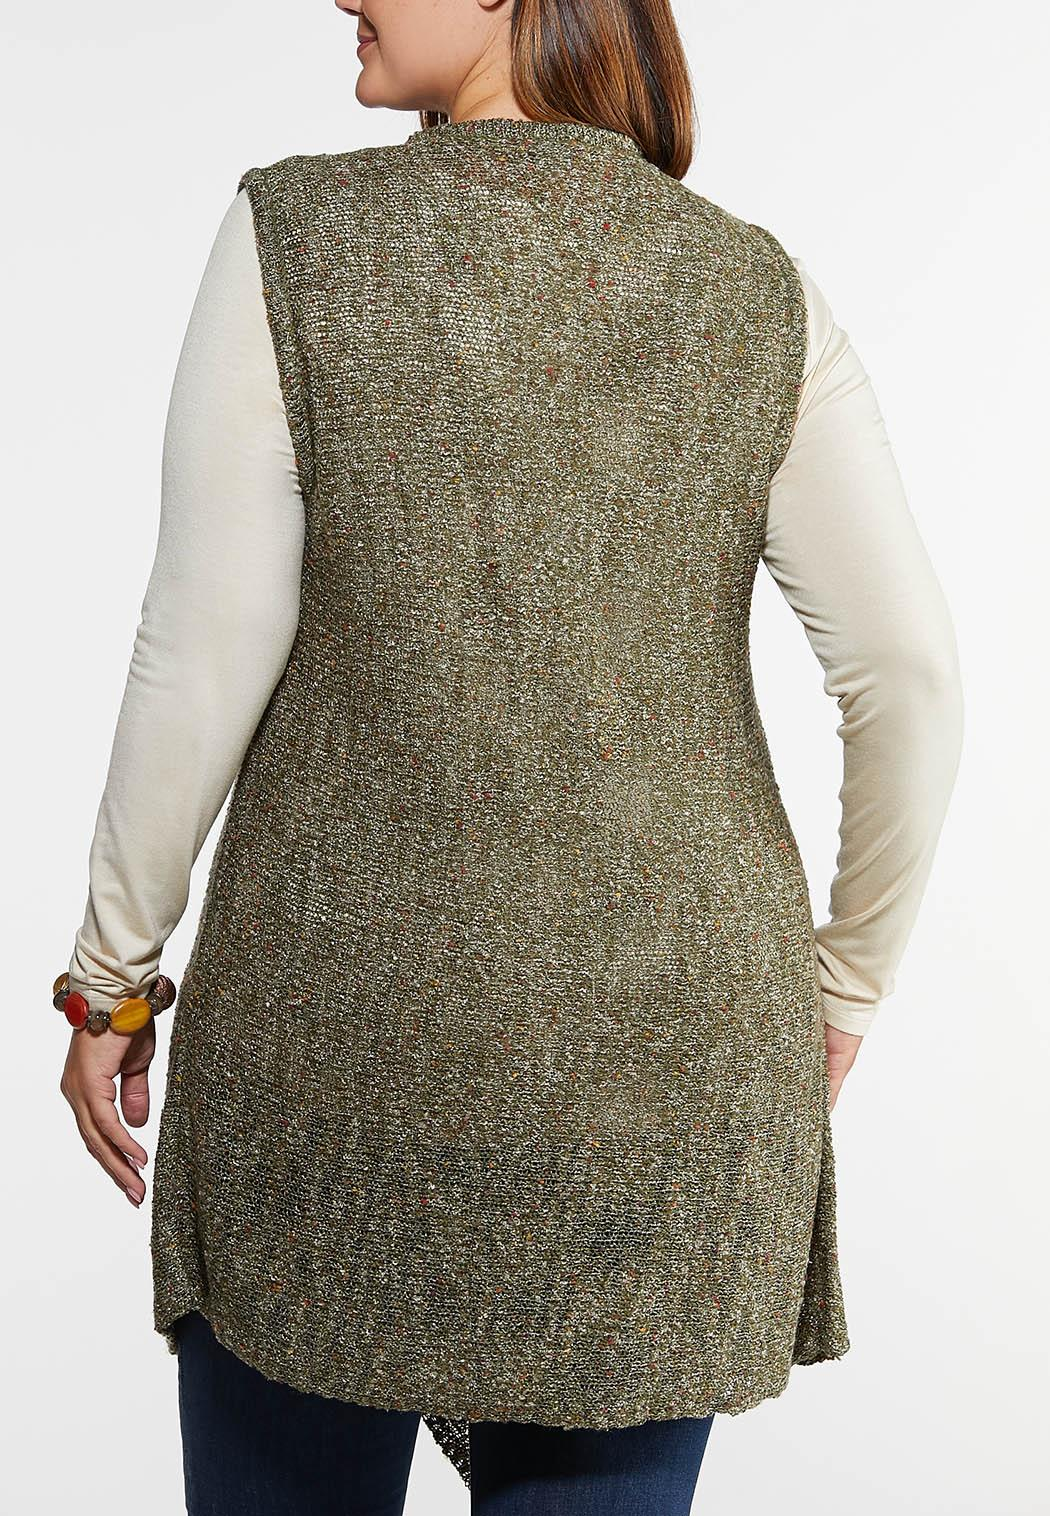 Plus Size Speckled Waterfall Cardigan (Item #43961762)